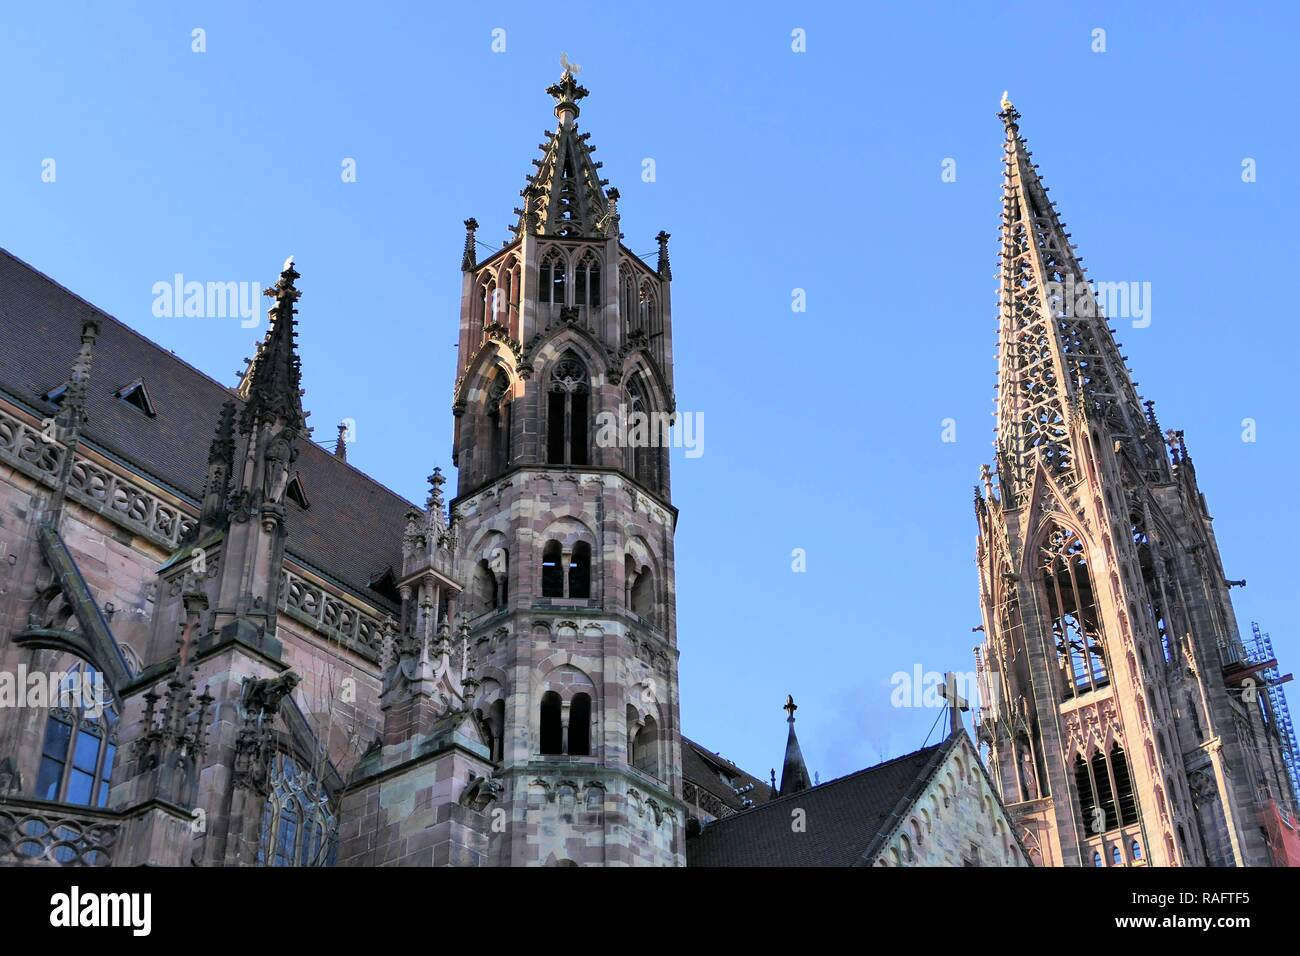 Soaring Cathedral - Stock Image